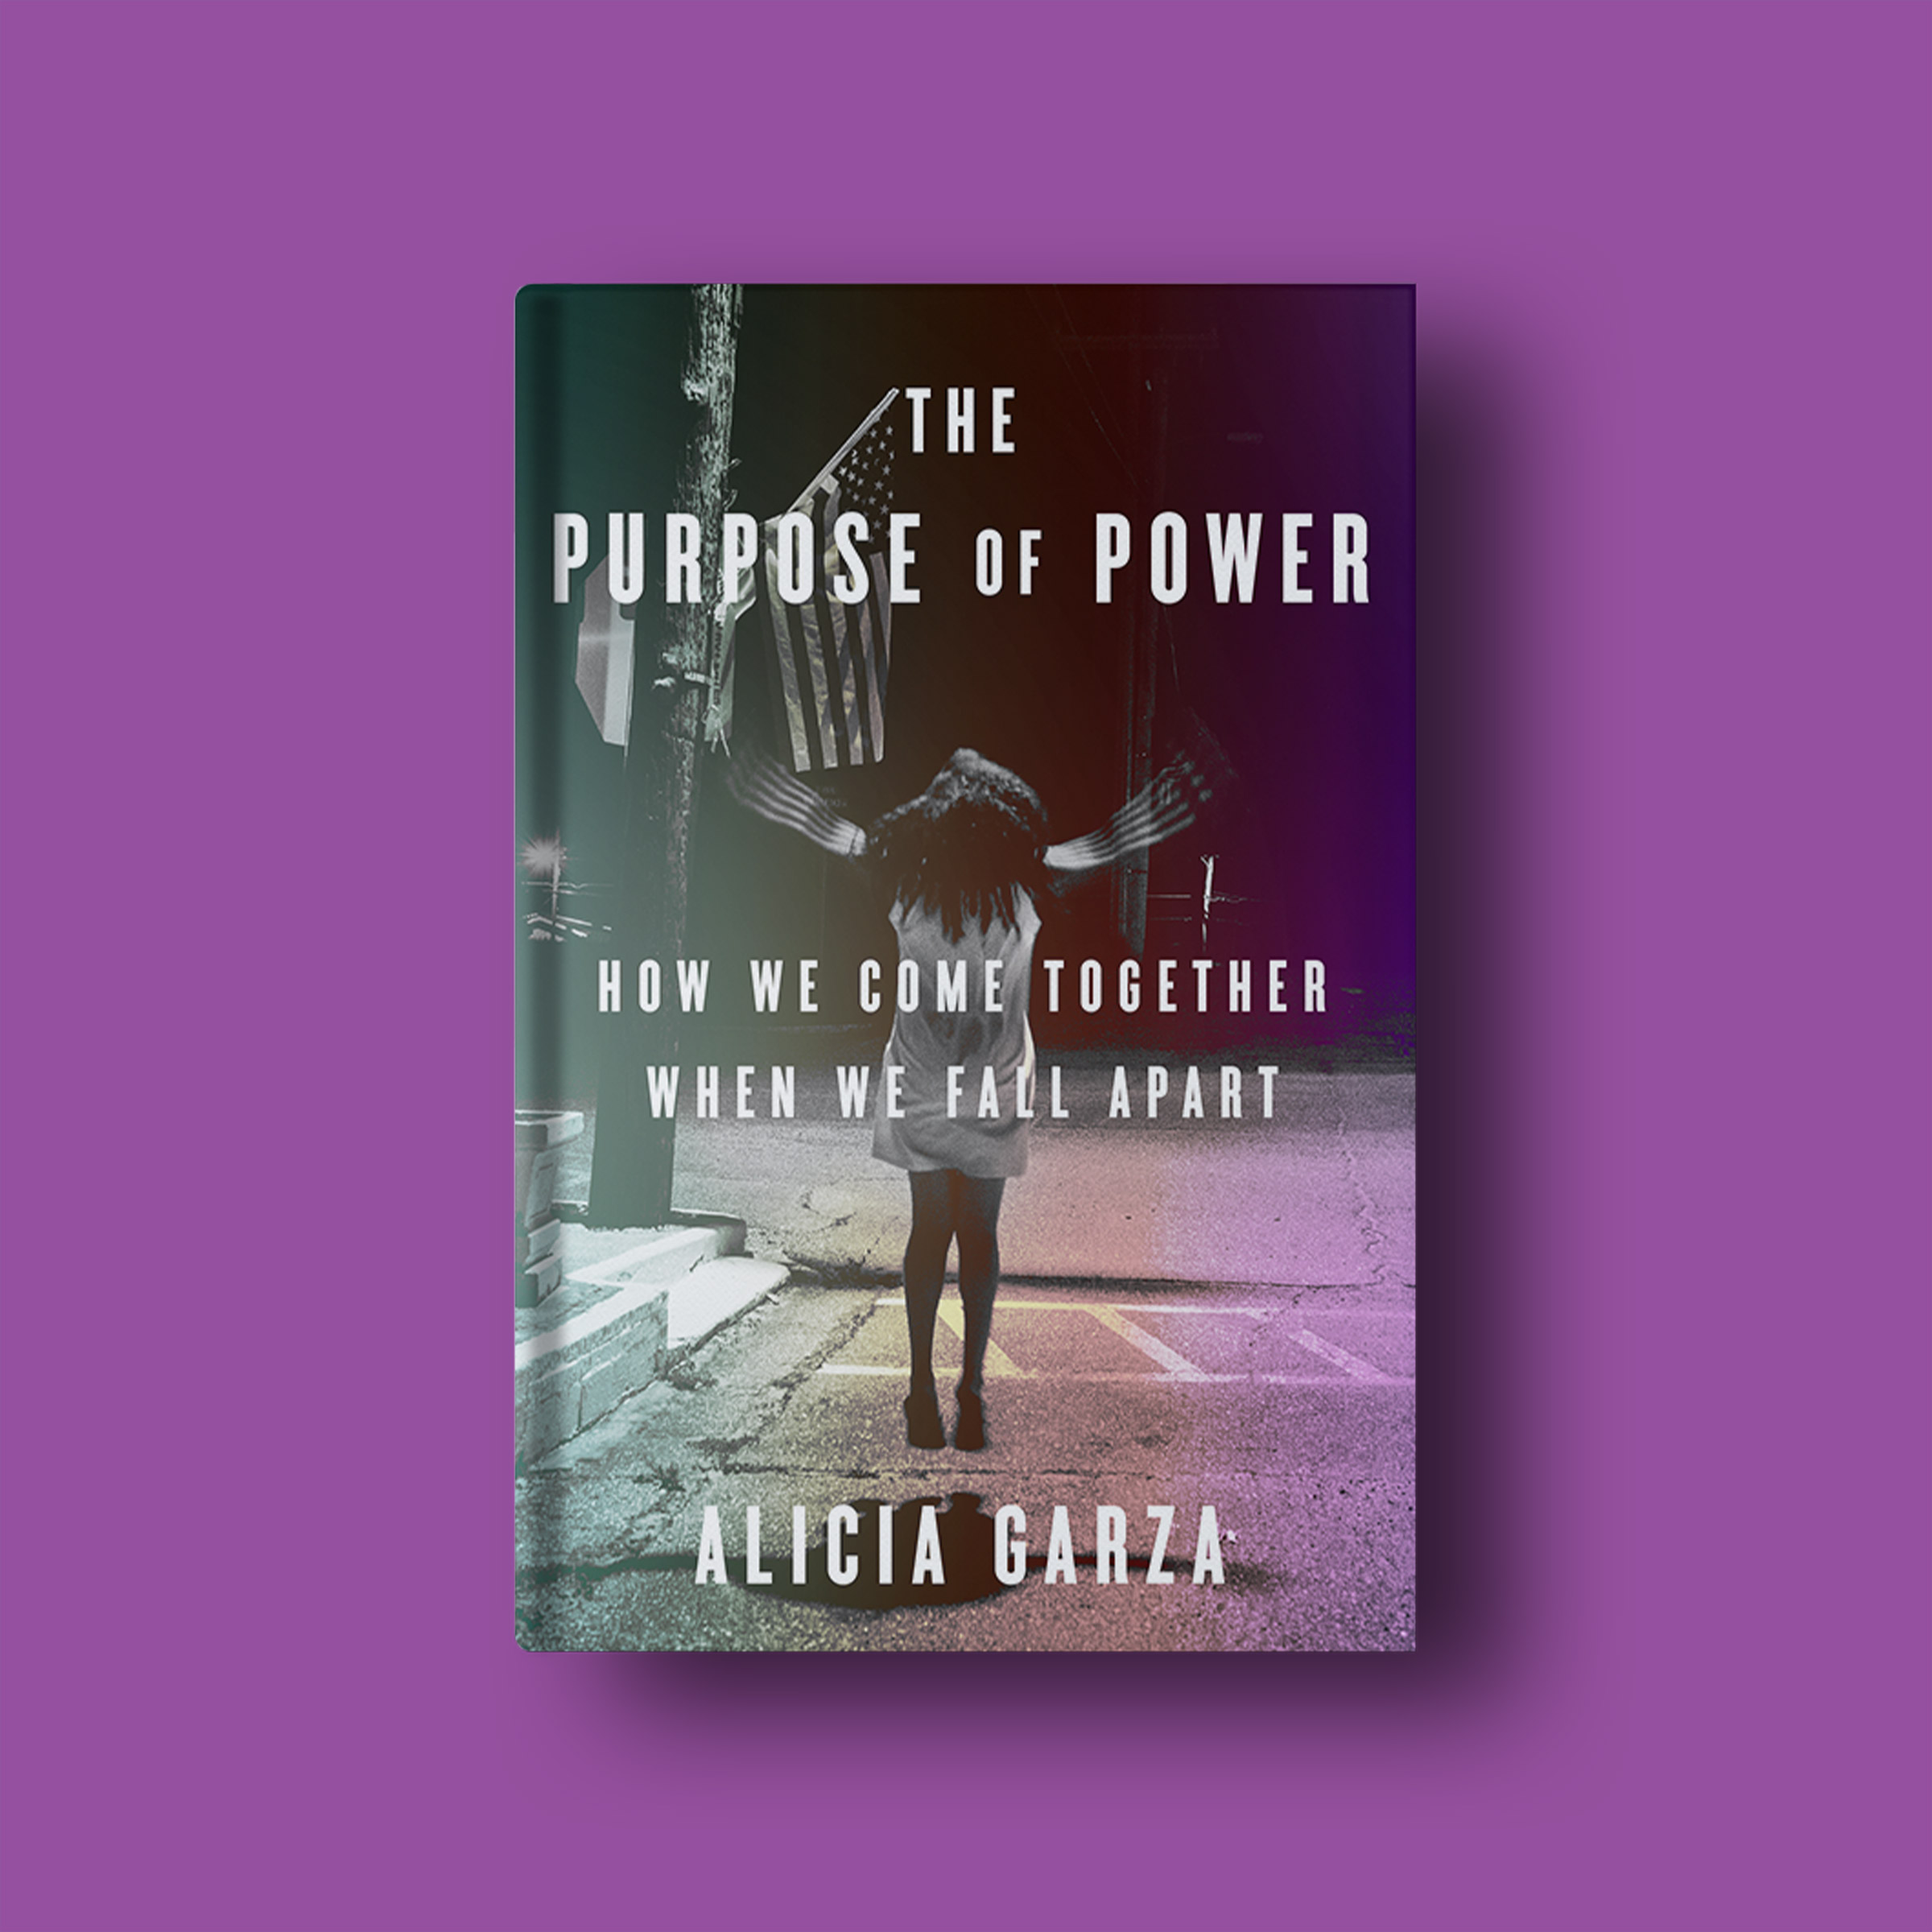 The Purpose of Power Excerpt